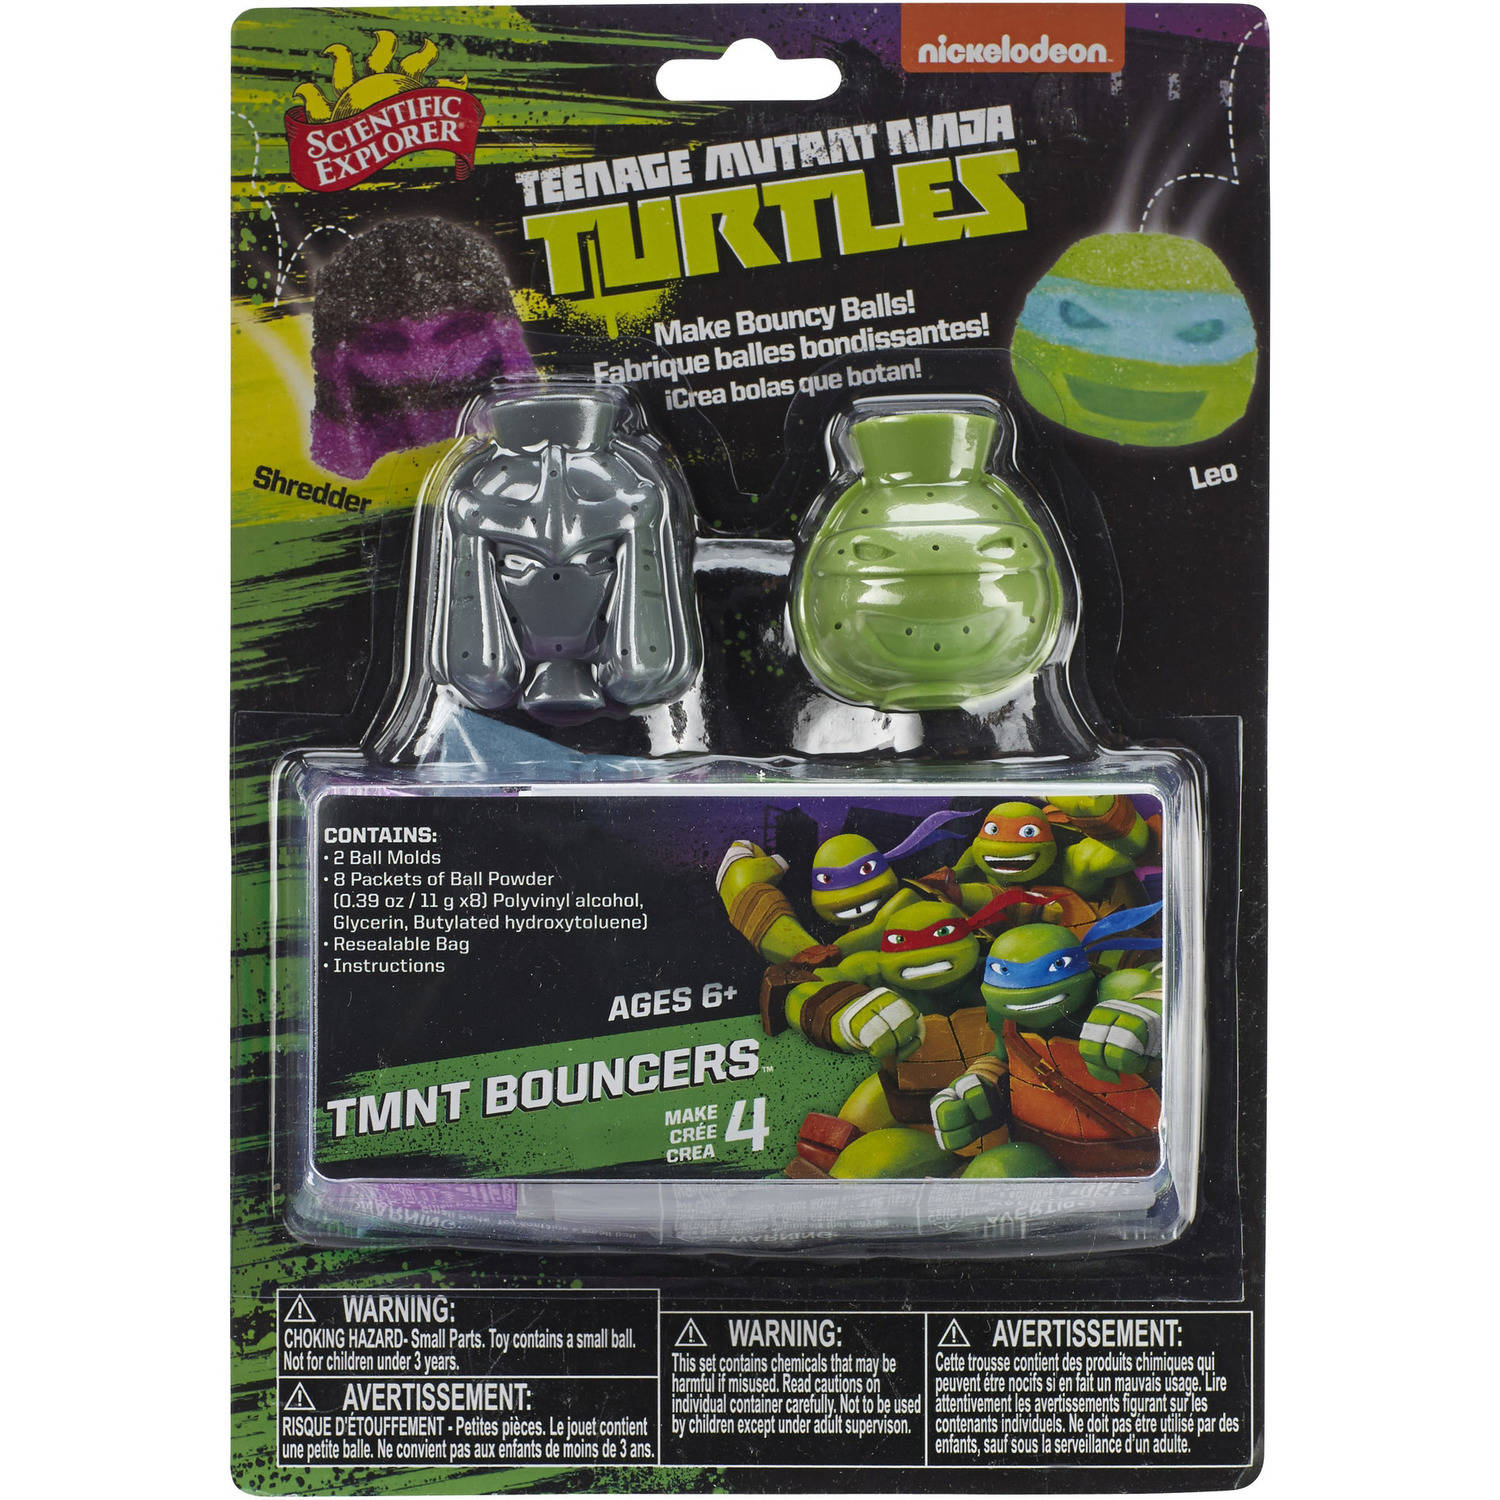 Scientific Explorer Teenage Mutant Ninja Turtles Bouncers